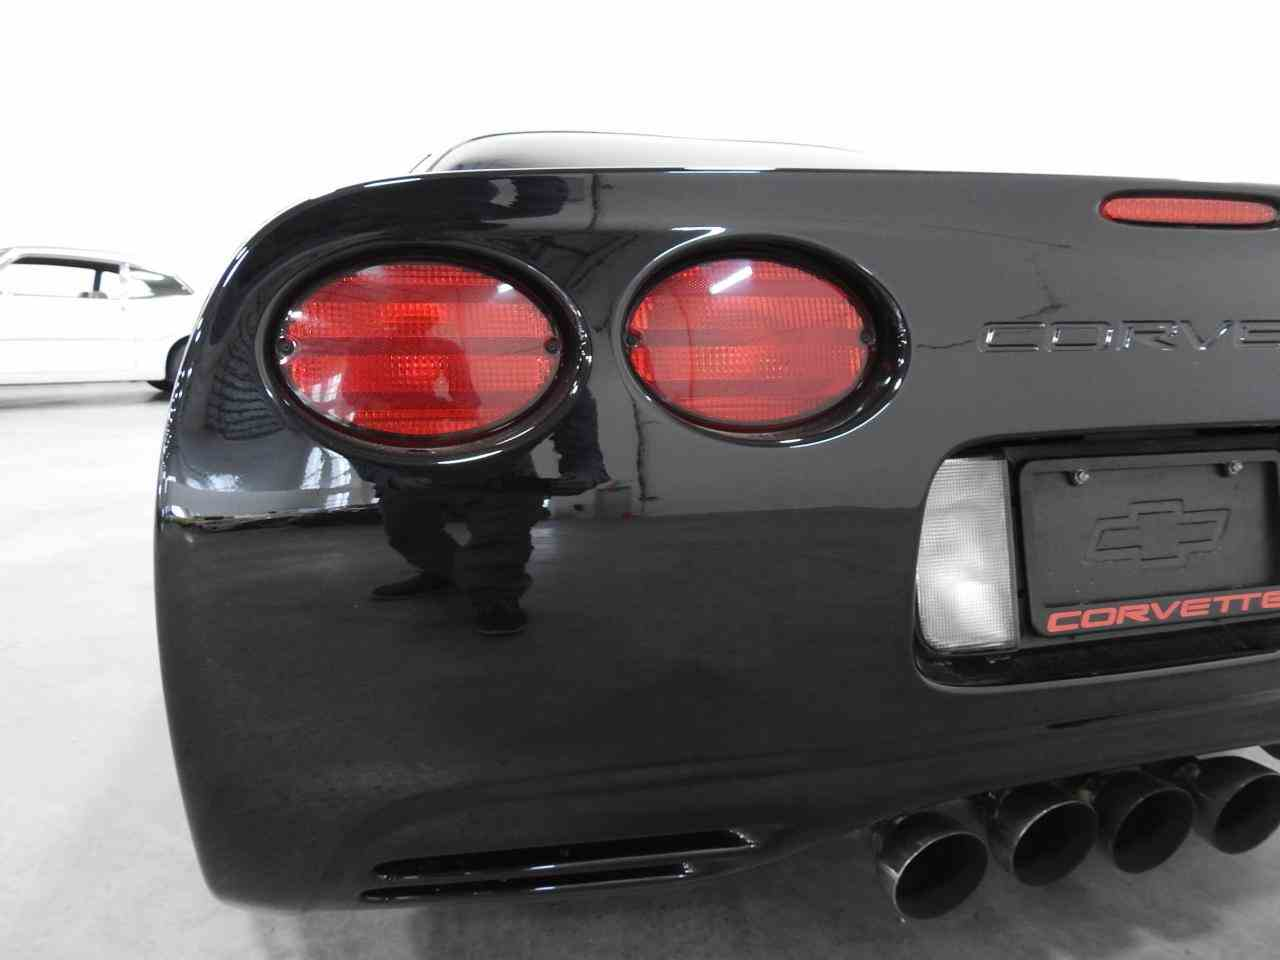 Large Picture of 2002 Corvette located in Wisconsin - $31,595.00 Offered by Gateway Classic Cars - Milwaukee - KE5O